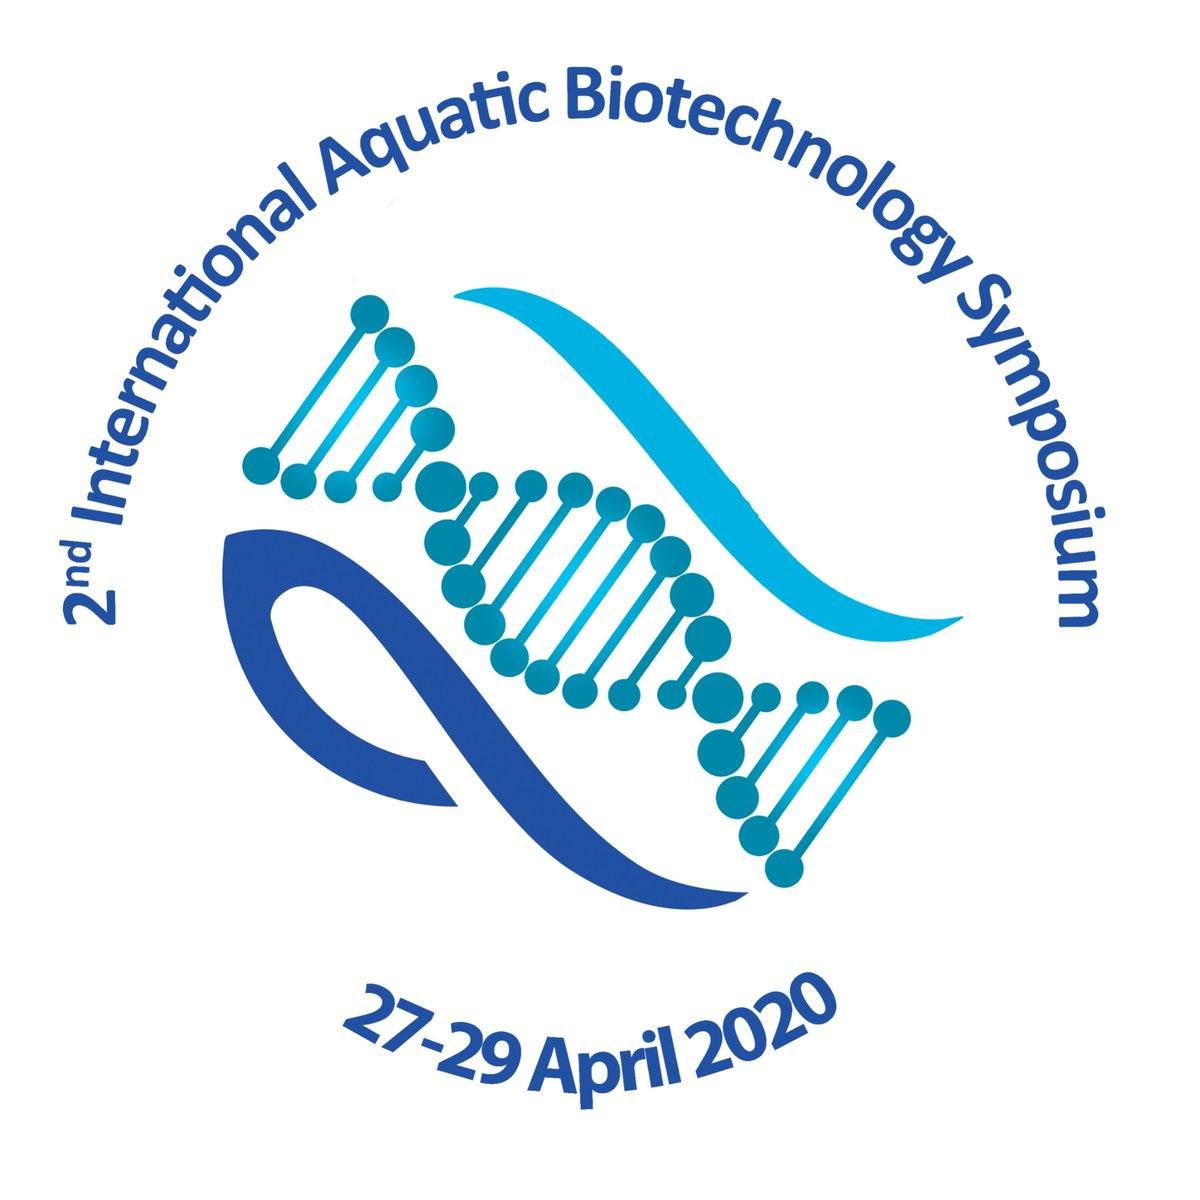 The deadline of the abstract submissions for 2nd International Aquatic Biotechnology Symposium has been extended to 3rd February ile ilgili görsel sonucu